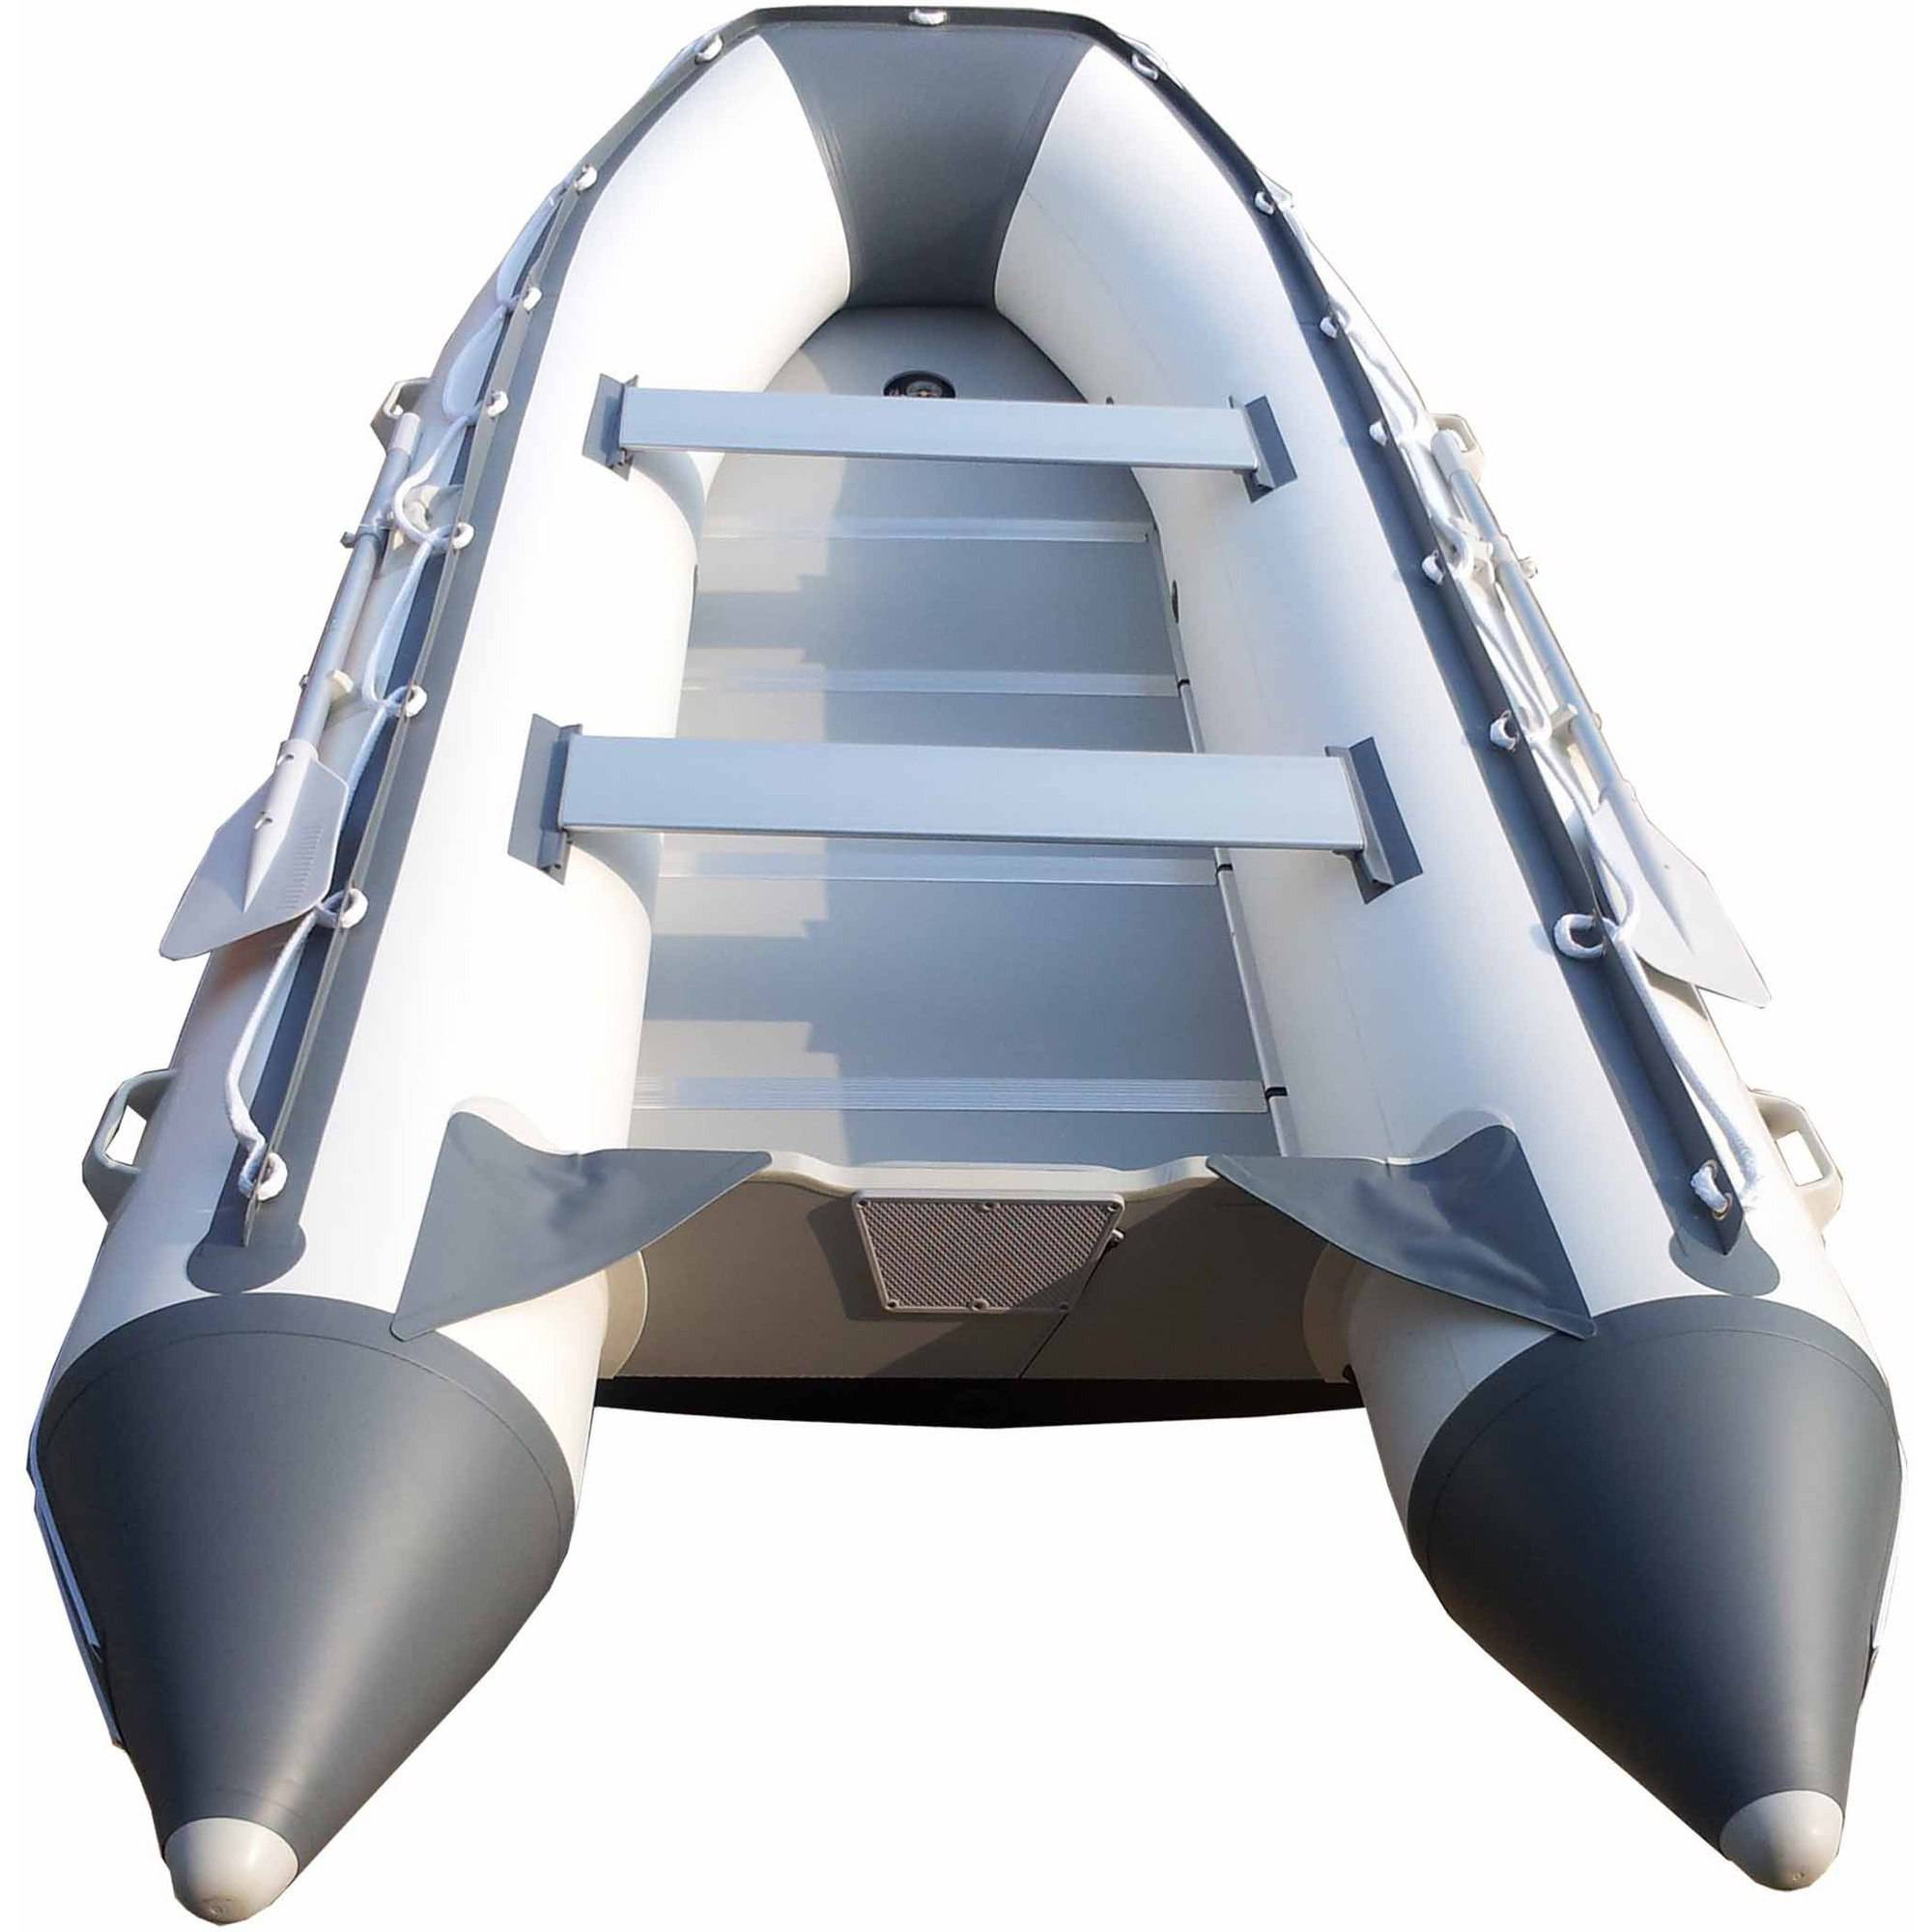 Newport Vessels 12.5' Catalina Inflatable Sport Tender Dinghy Boat